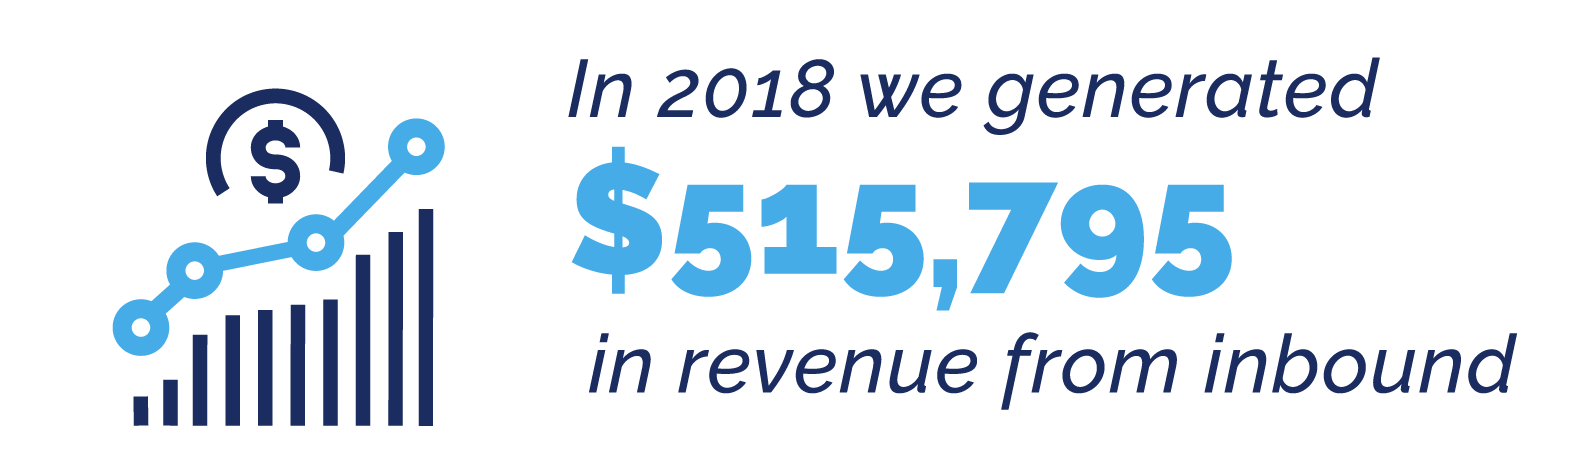 $515,795 from Inbound Revenue in 2018